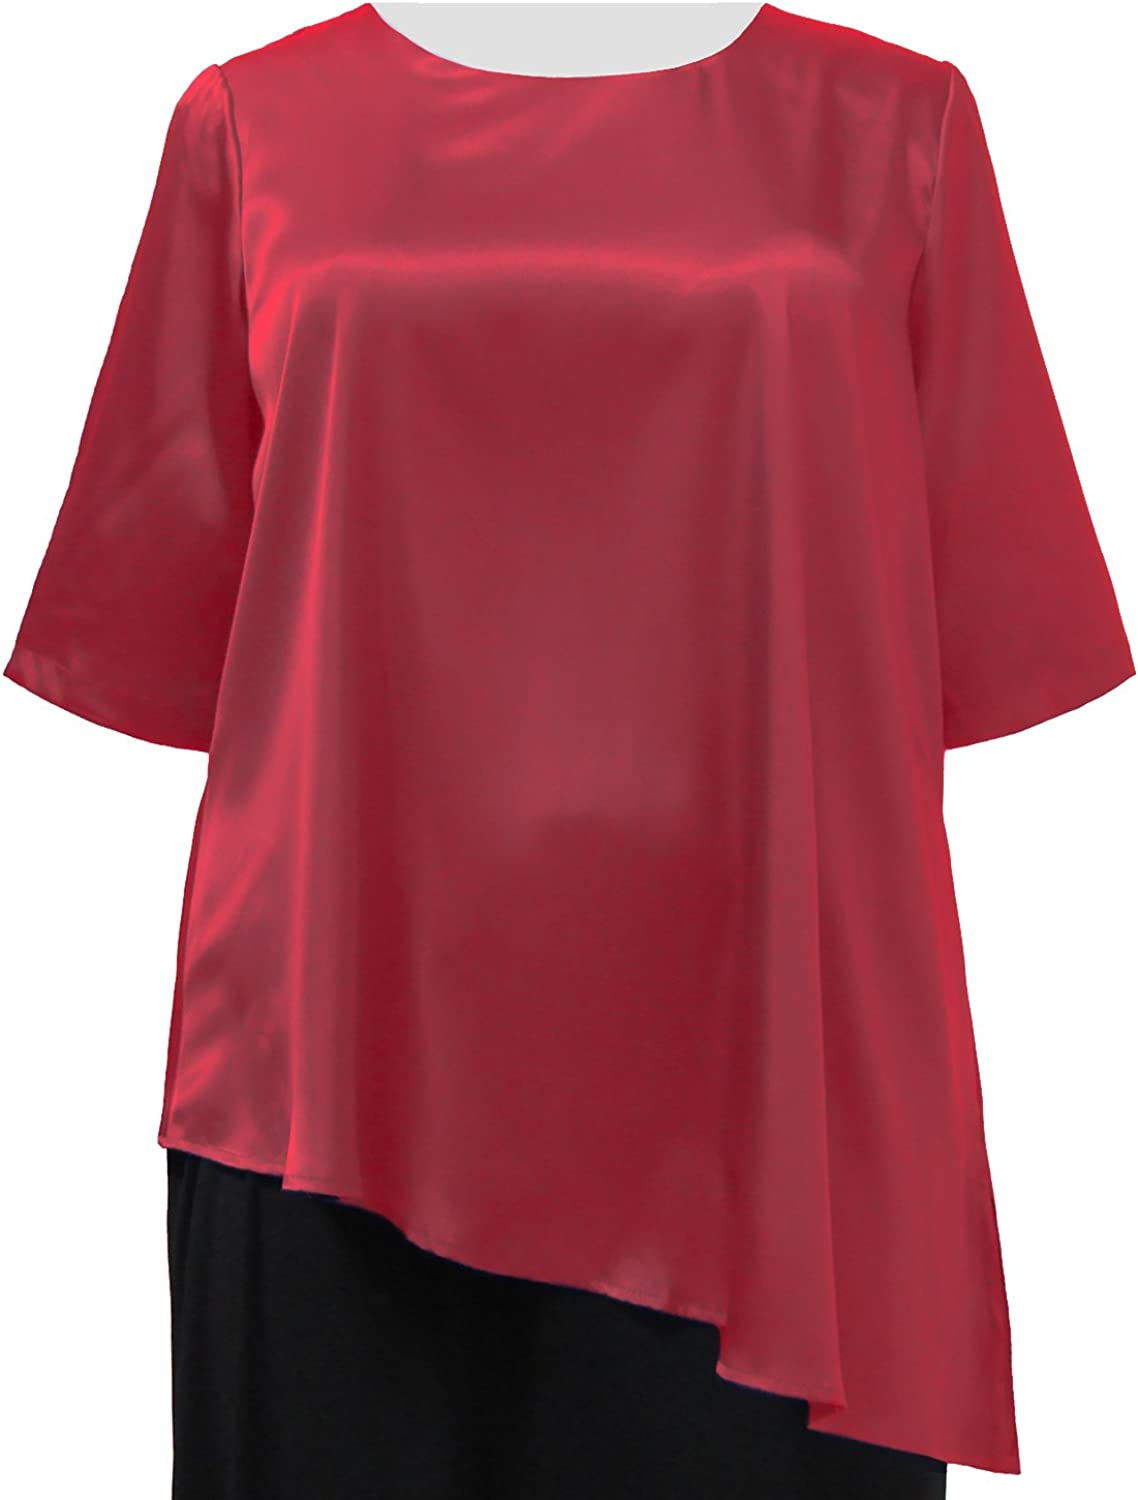 Red Asymmetrical 3/4 Sleeve Round Neck Pullover Plus Size Woman's Pullover Top